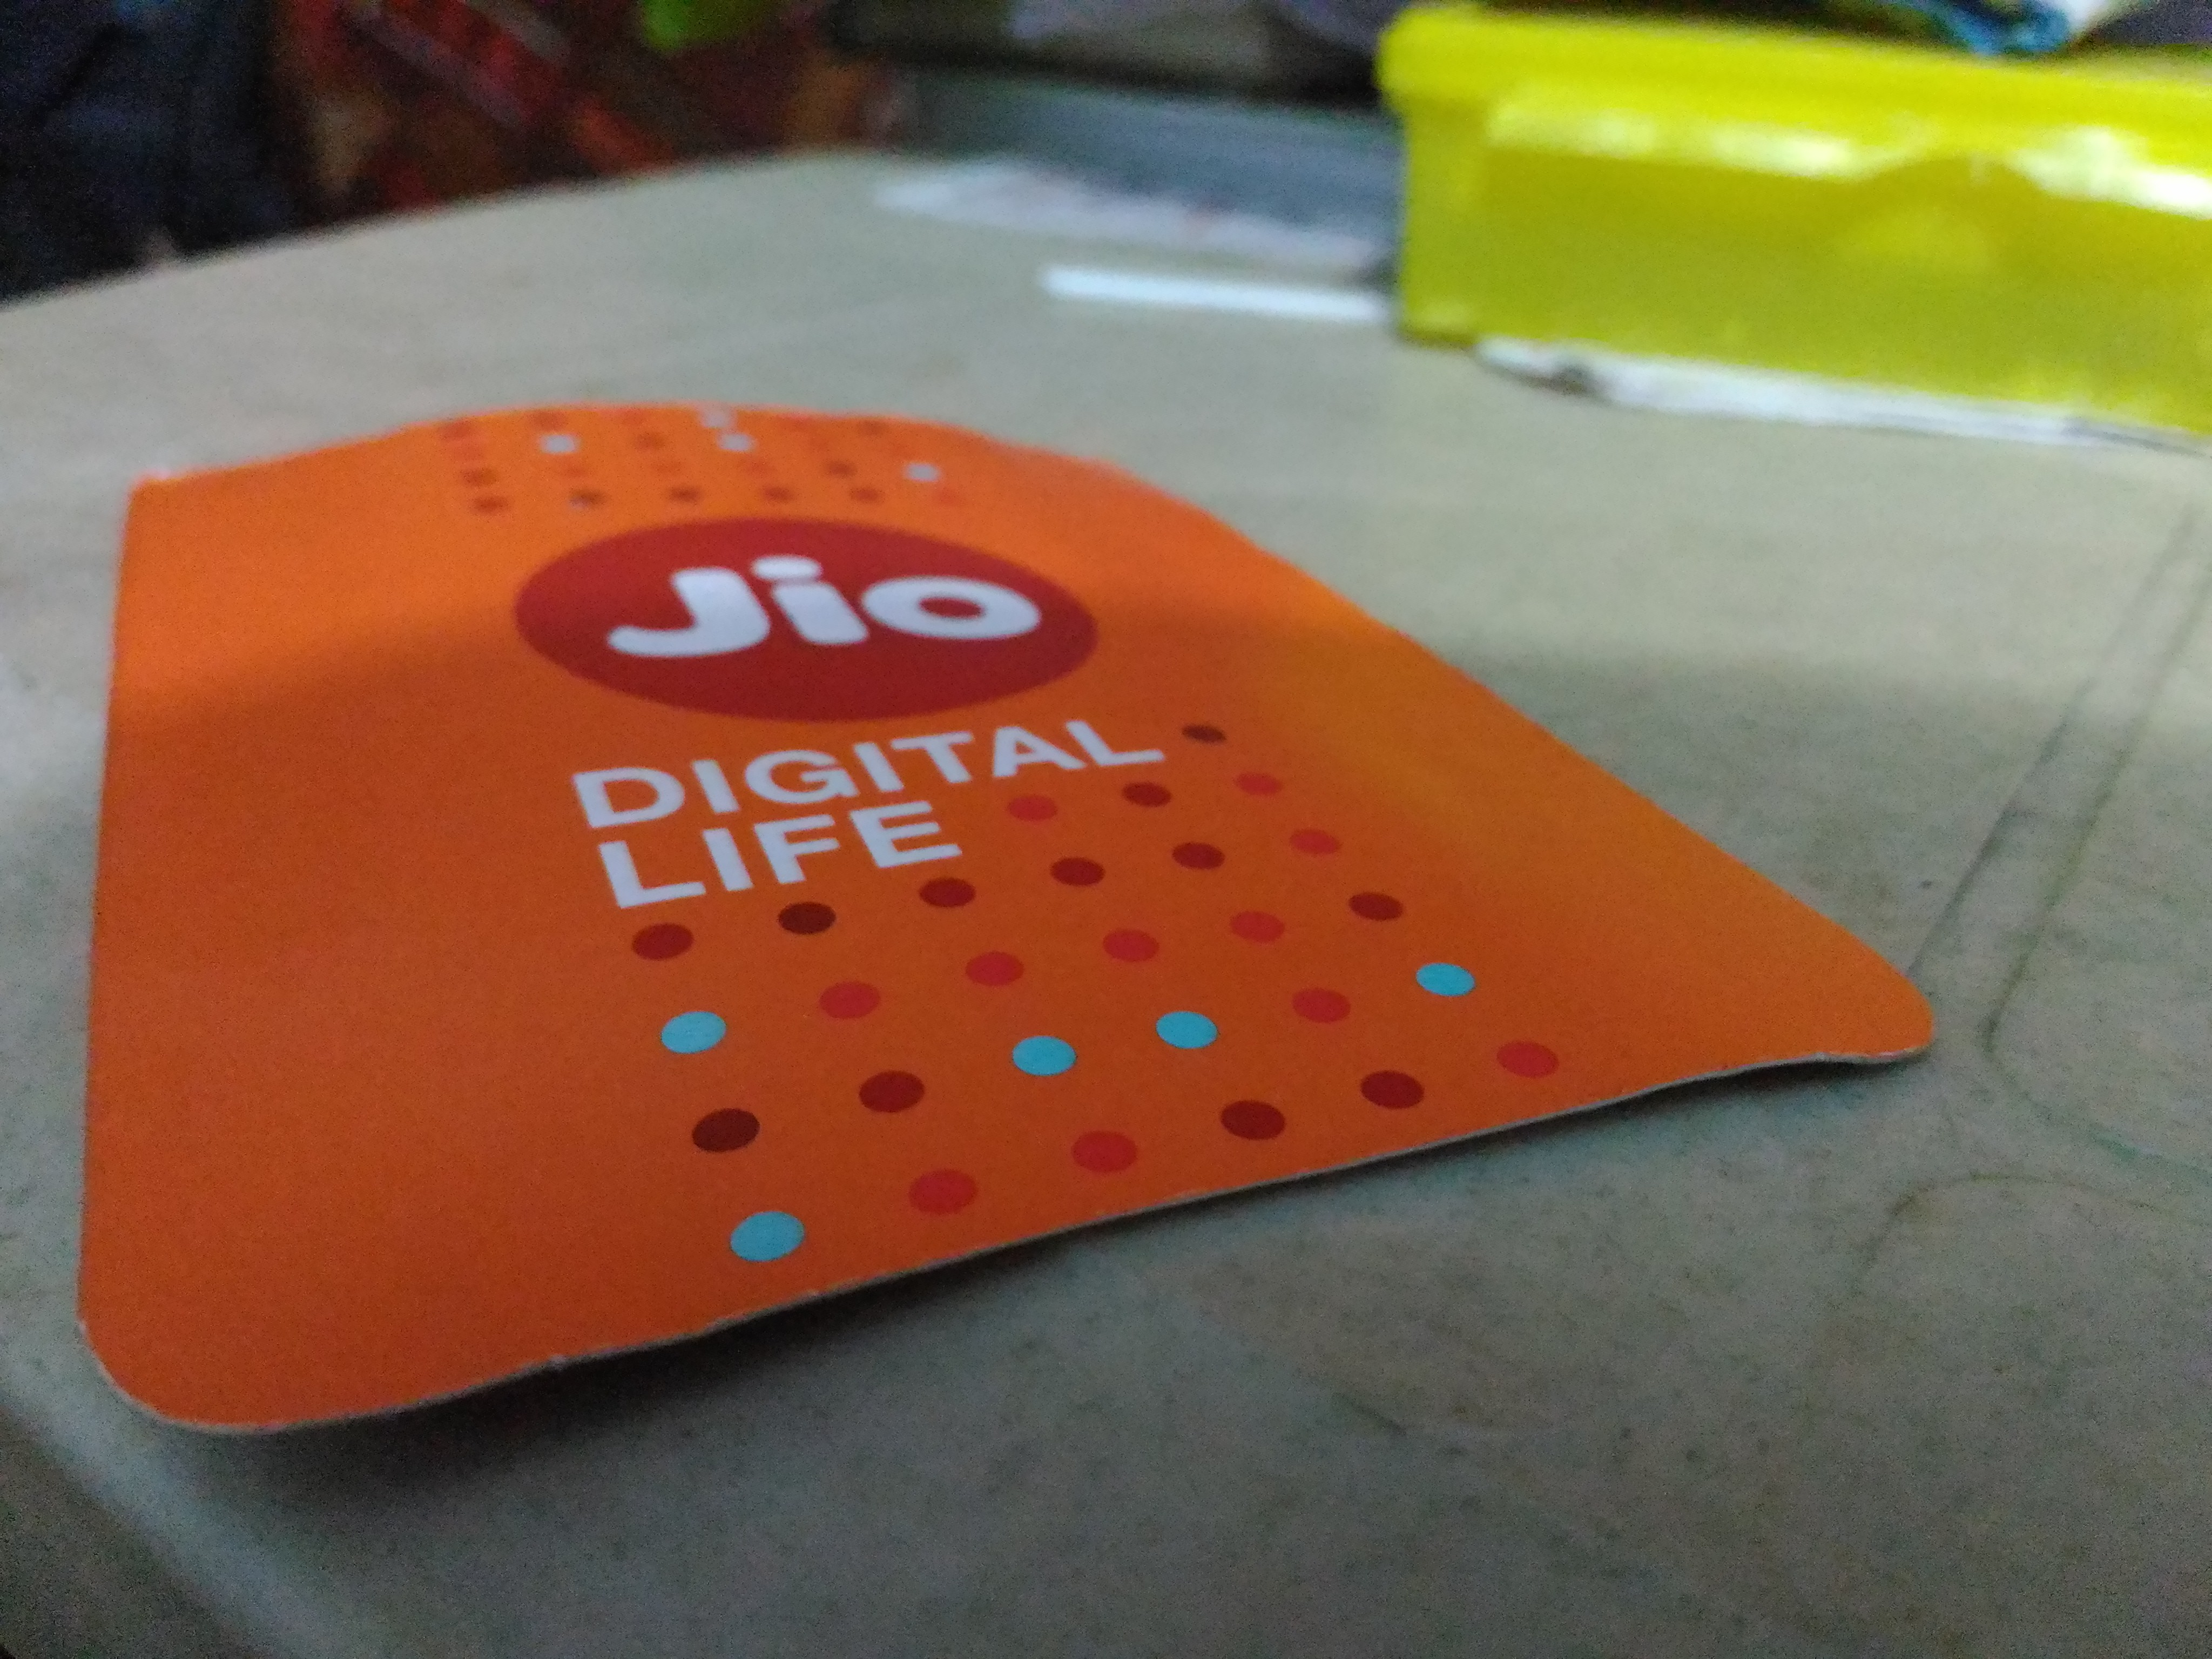 Jio upgrades recharge validity, introduces new prepaid denominations